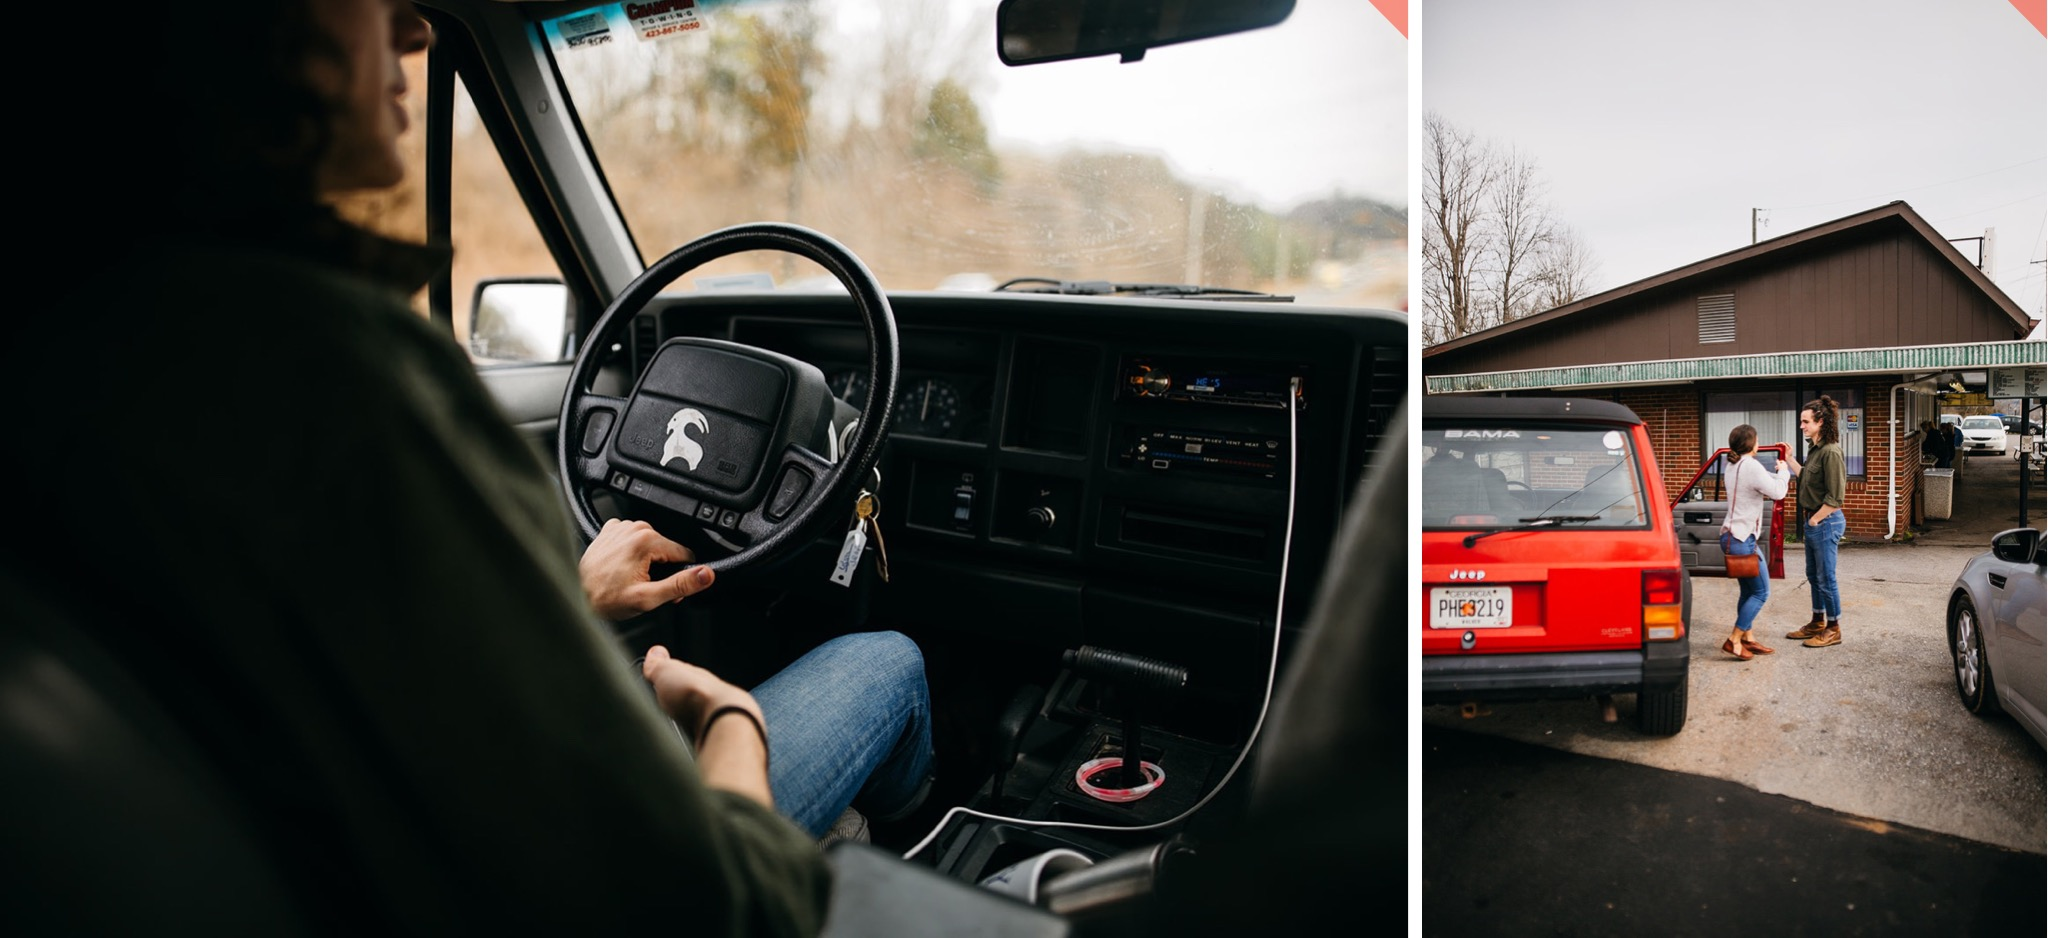 A man sits behind the wheel of an old red Jeep Cherokee.